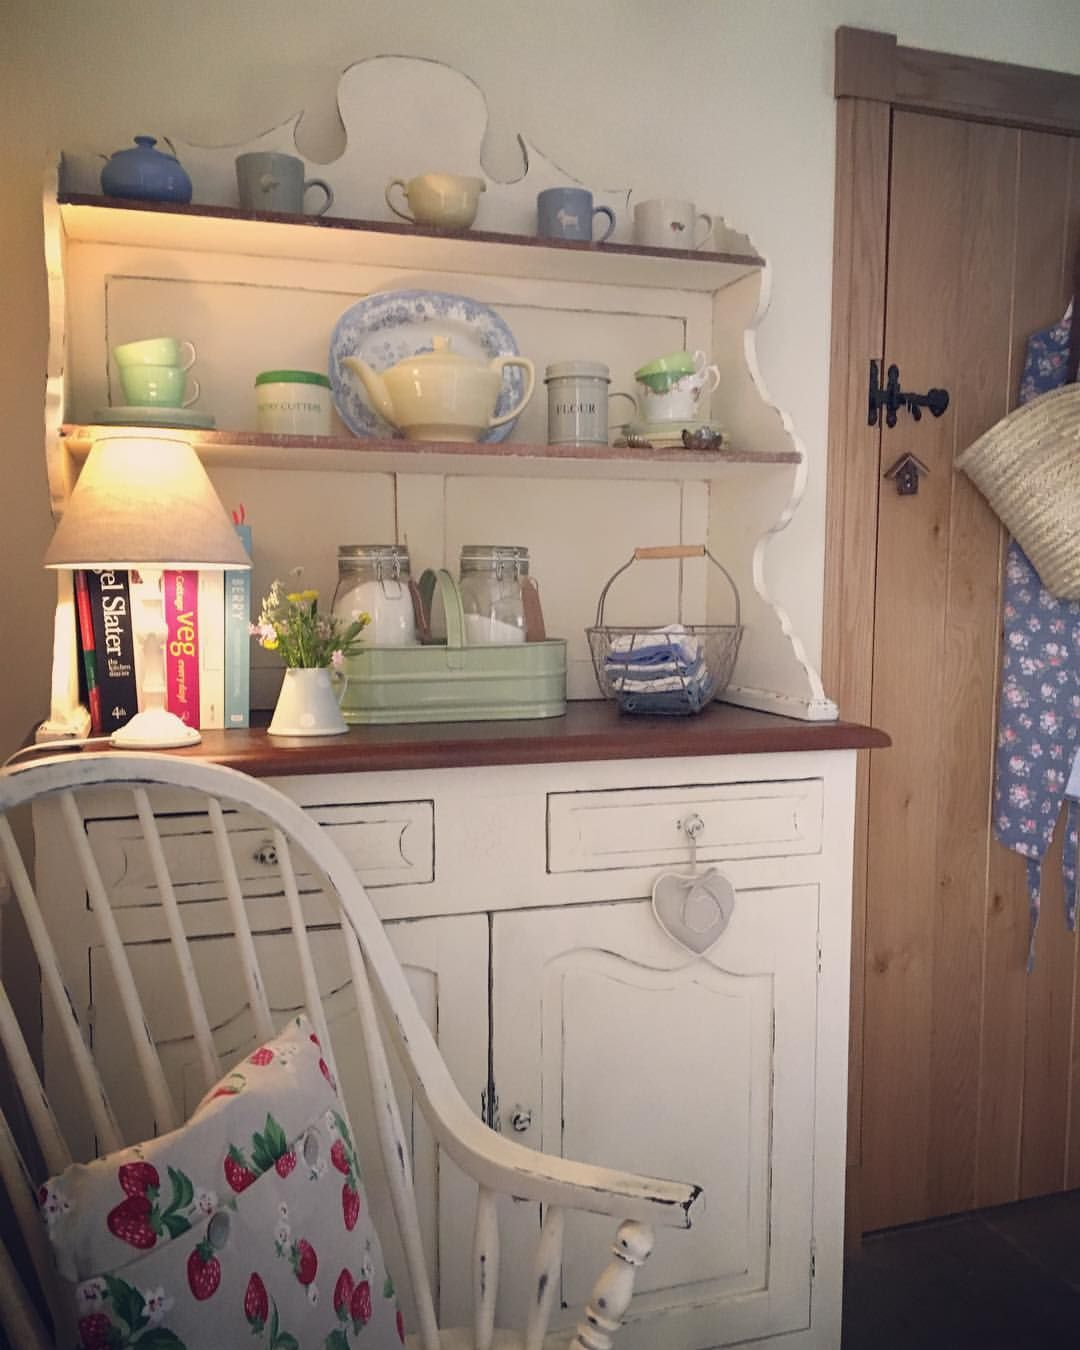 Pin By Mila On Cozy English Cottage Countryside Campagne With